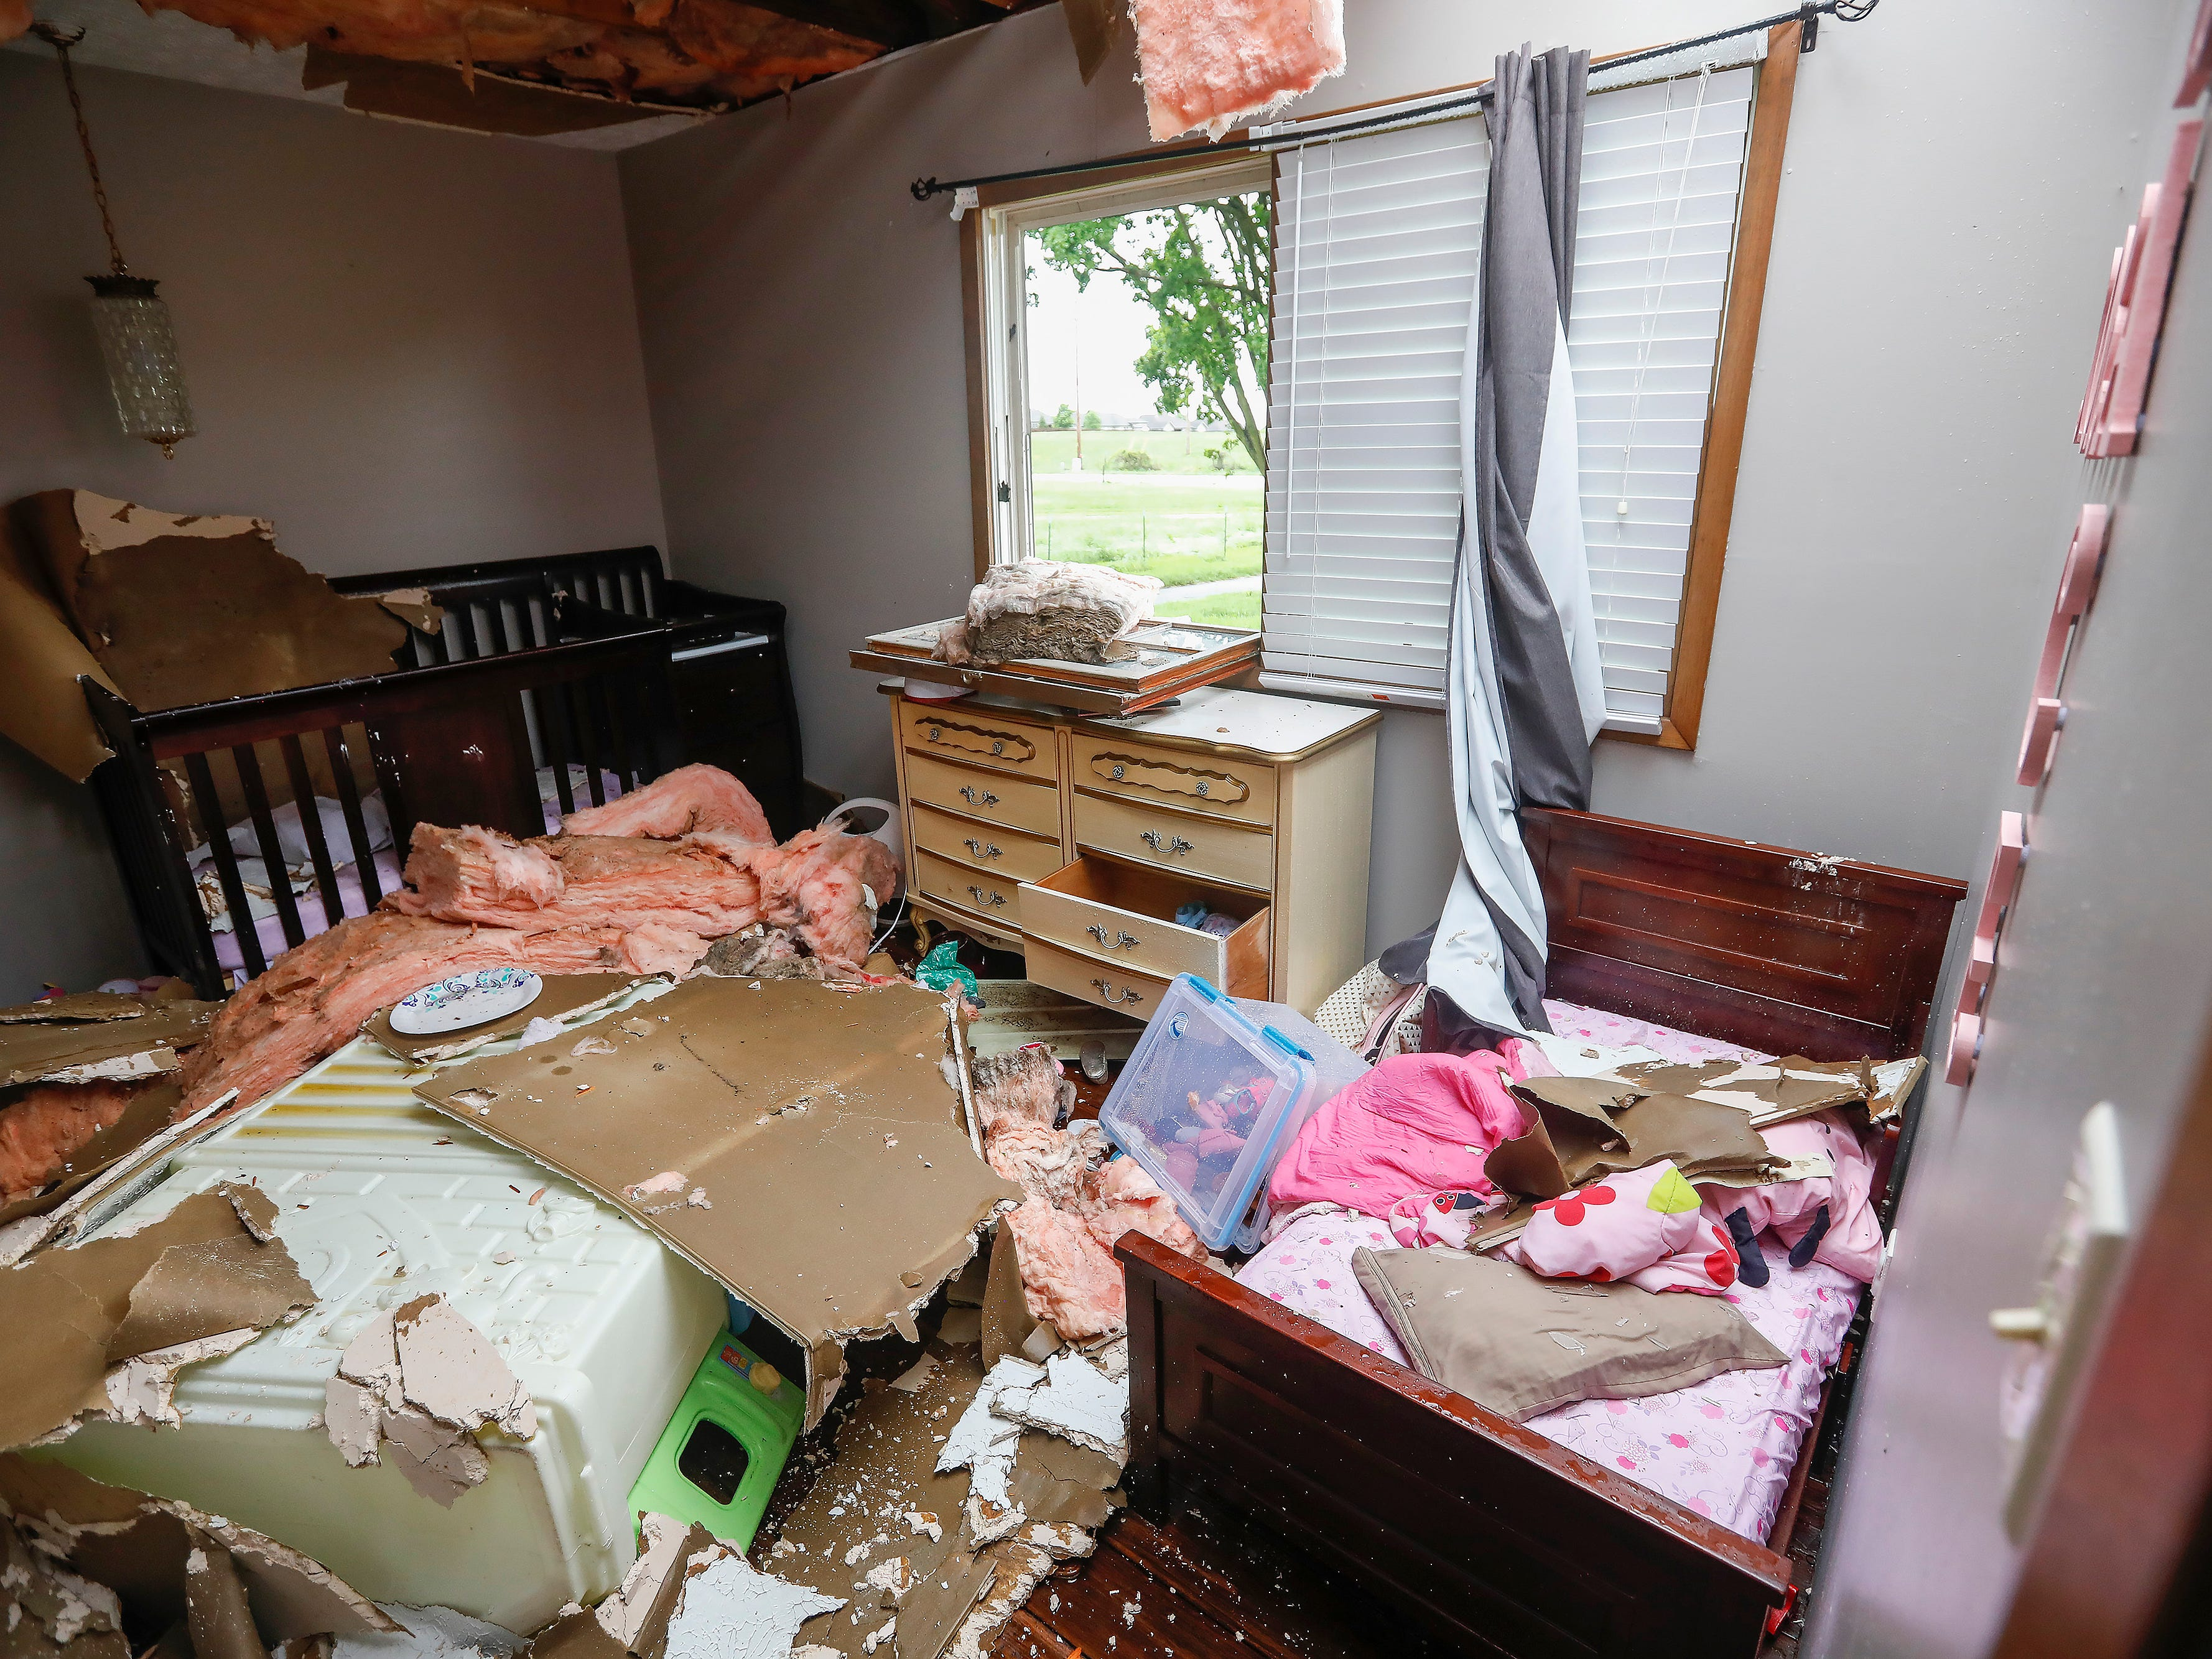 The beds where two of Denton Wilson's children sleep is covered in debris on Wednesday. Wilson and his family took shelter in the bathroom during a likely tornado that hit Ozark on Tuesday, April 30, 2019.